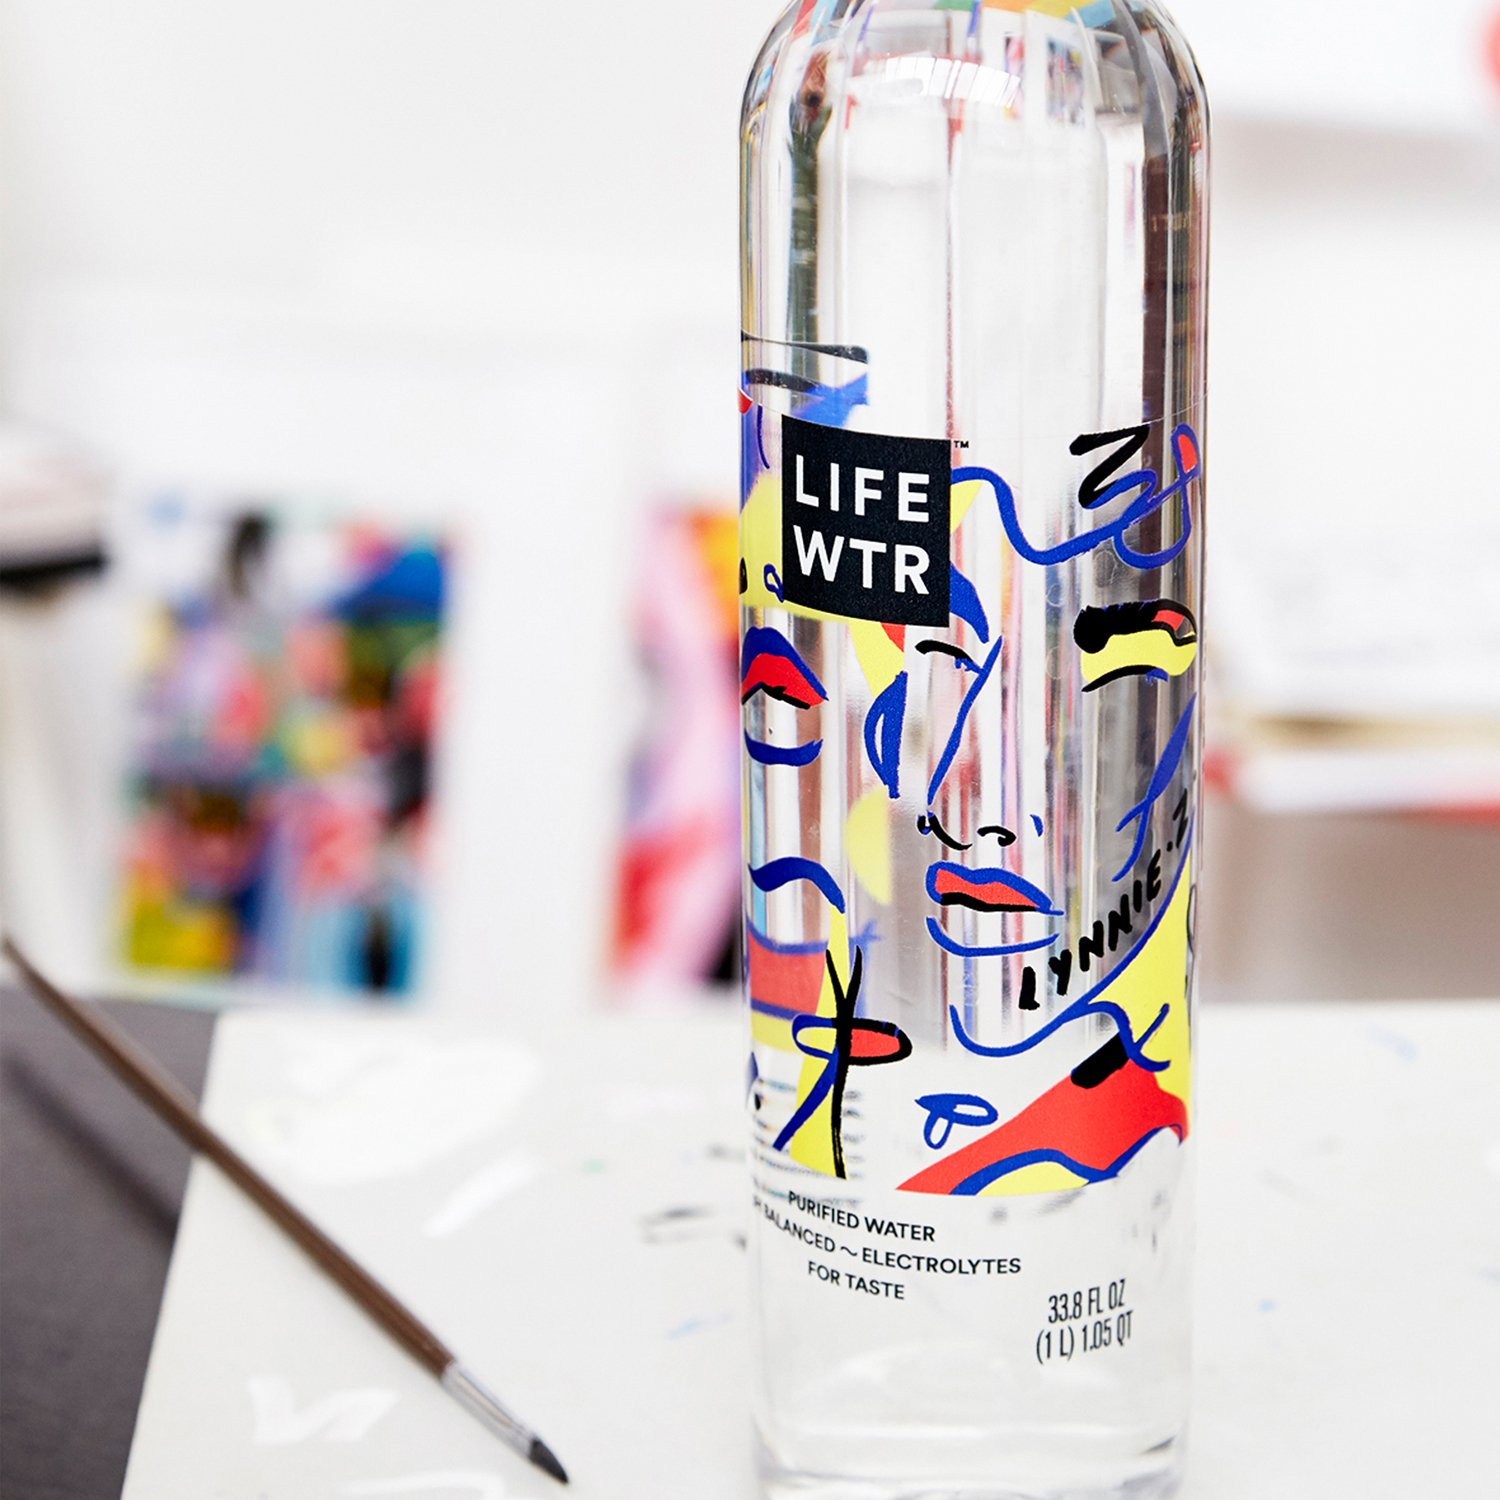 LIFEWTR Series 2: Women In Art Brand Packaging by PepsiCo Design and Innovation, adesignawards